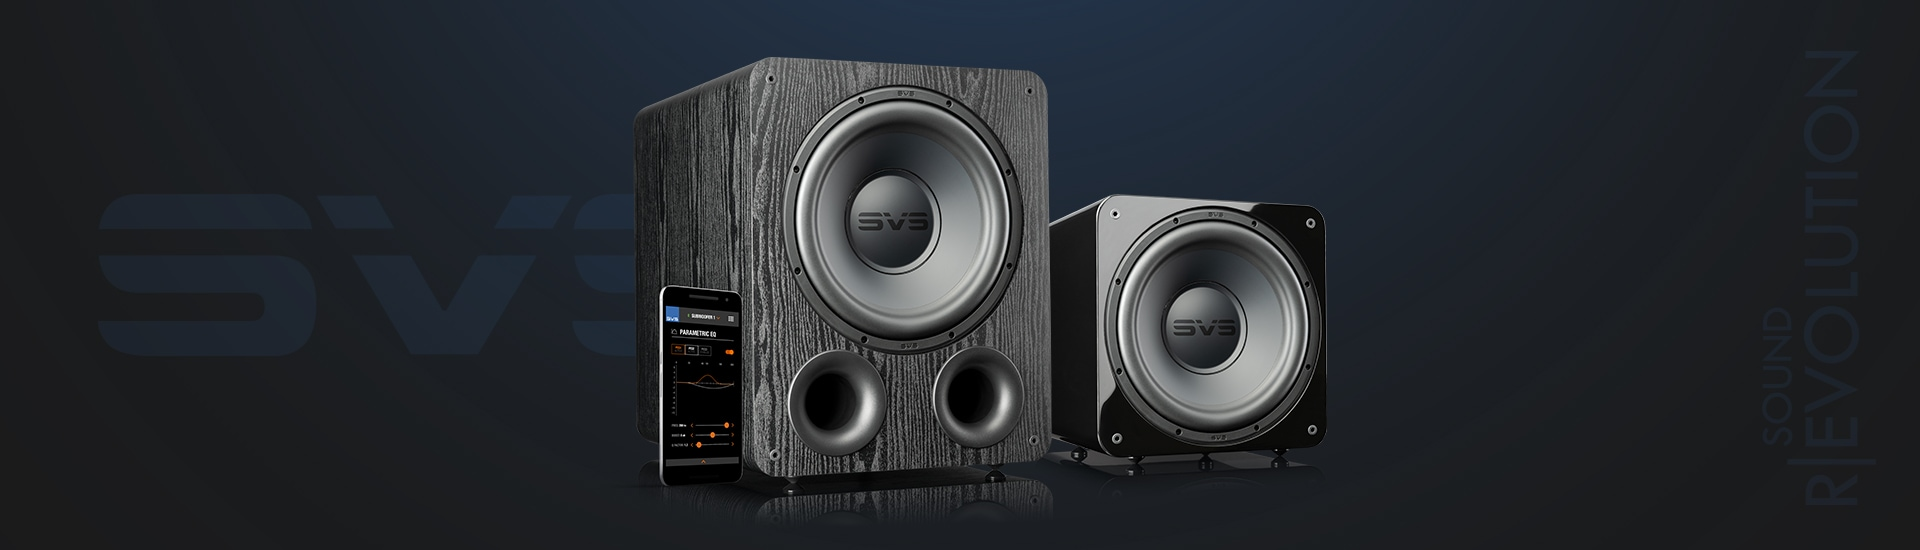 Review: New SVS SB-1000 Pro & PB-1000 Pro Powered Subwoofers